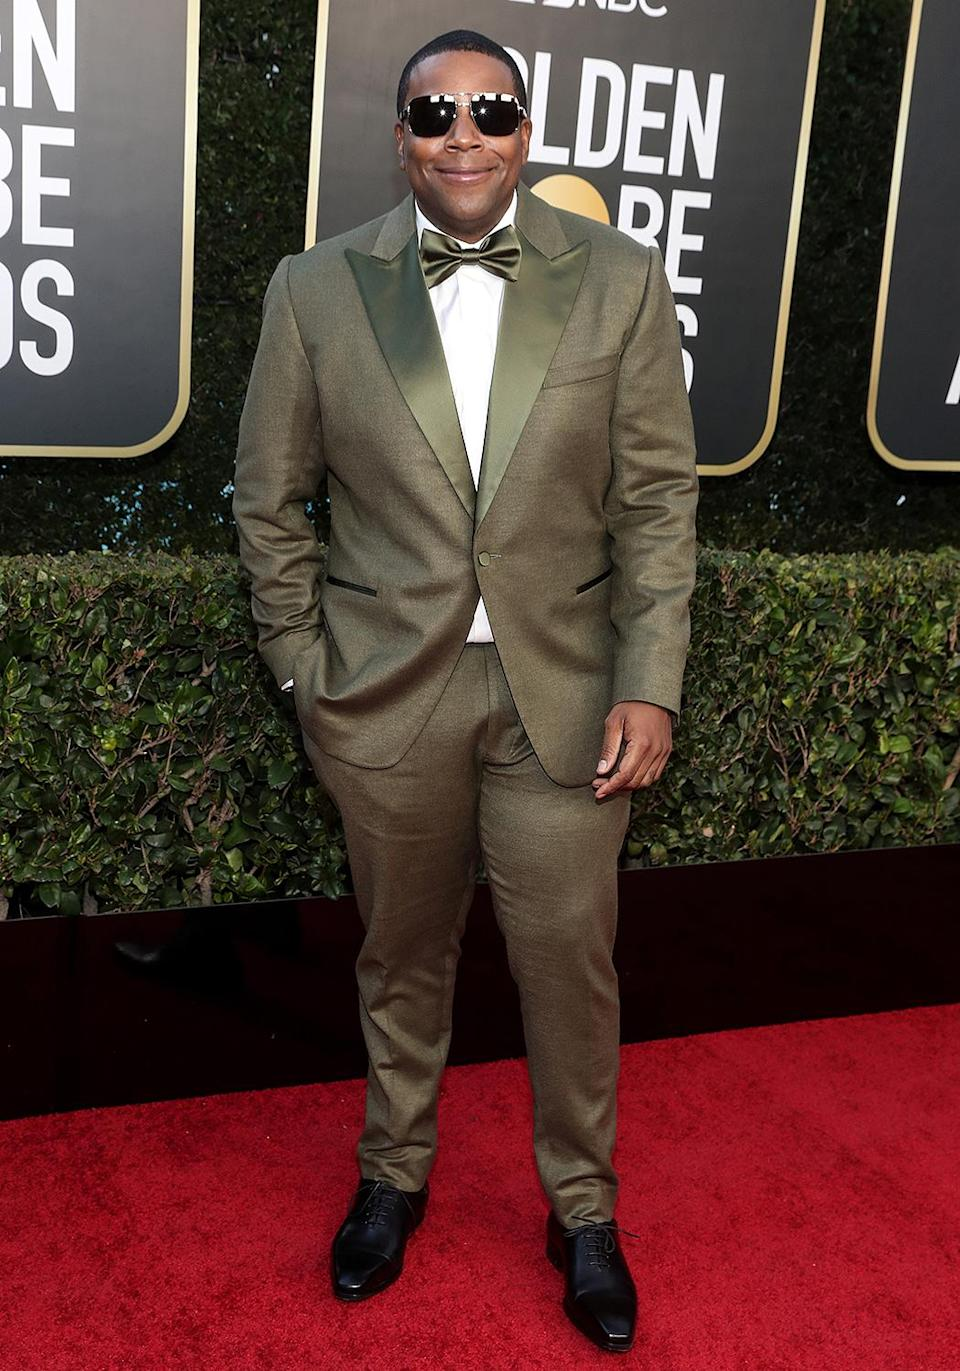 <p>The comedian has been working since he was a teenager on Nickelodeon's <em>All That</em>, making his way through the comedy world to be the longest-tenured cast member on <em>Saturday Night Live. </em>He's born on May 10. </p>